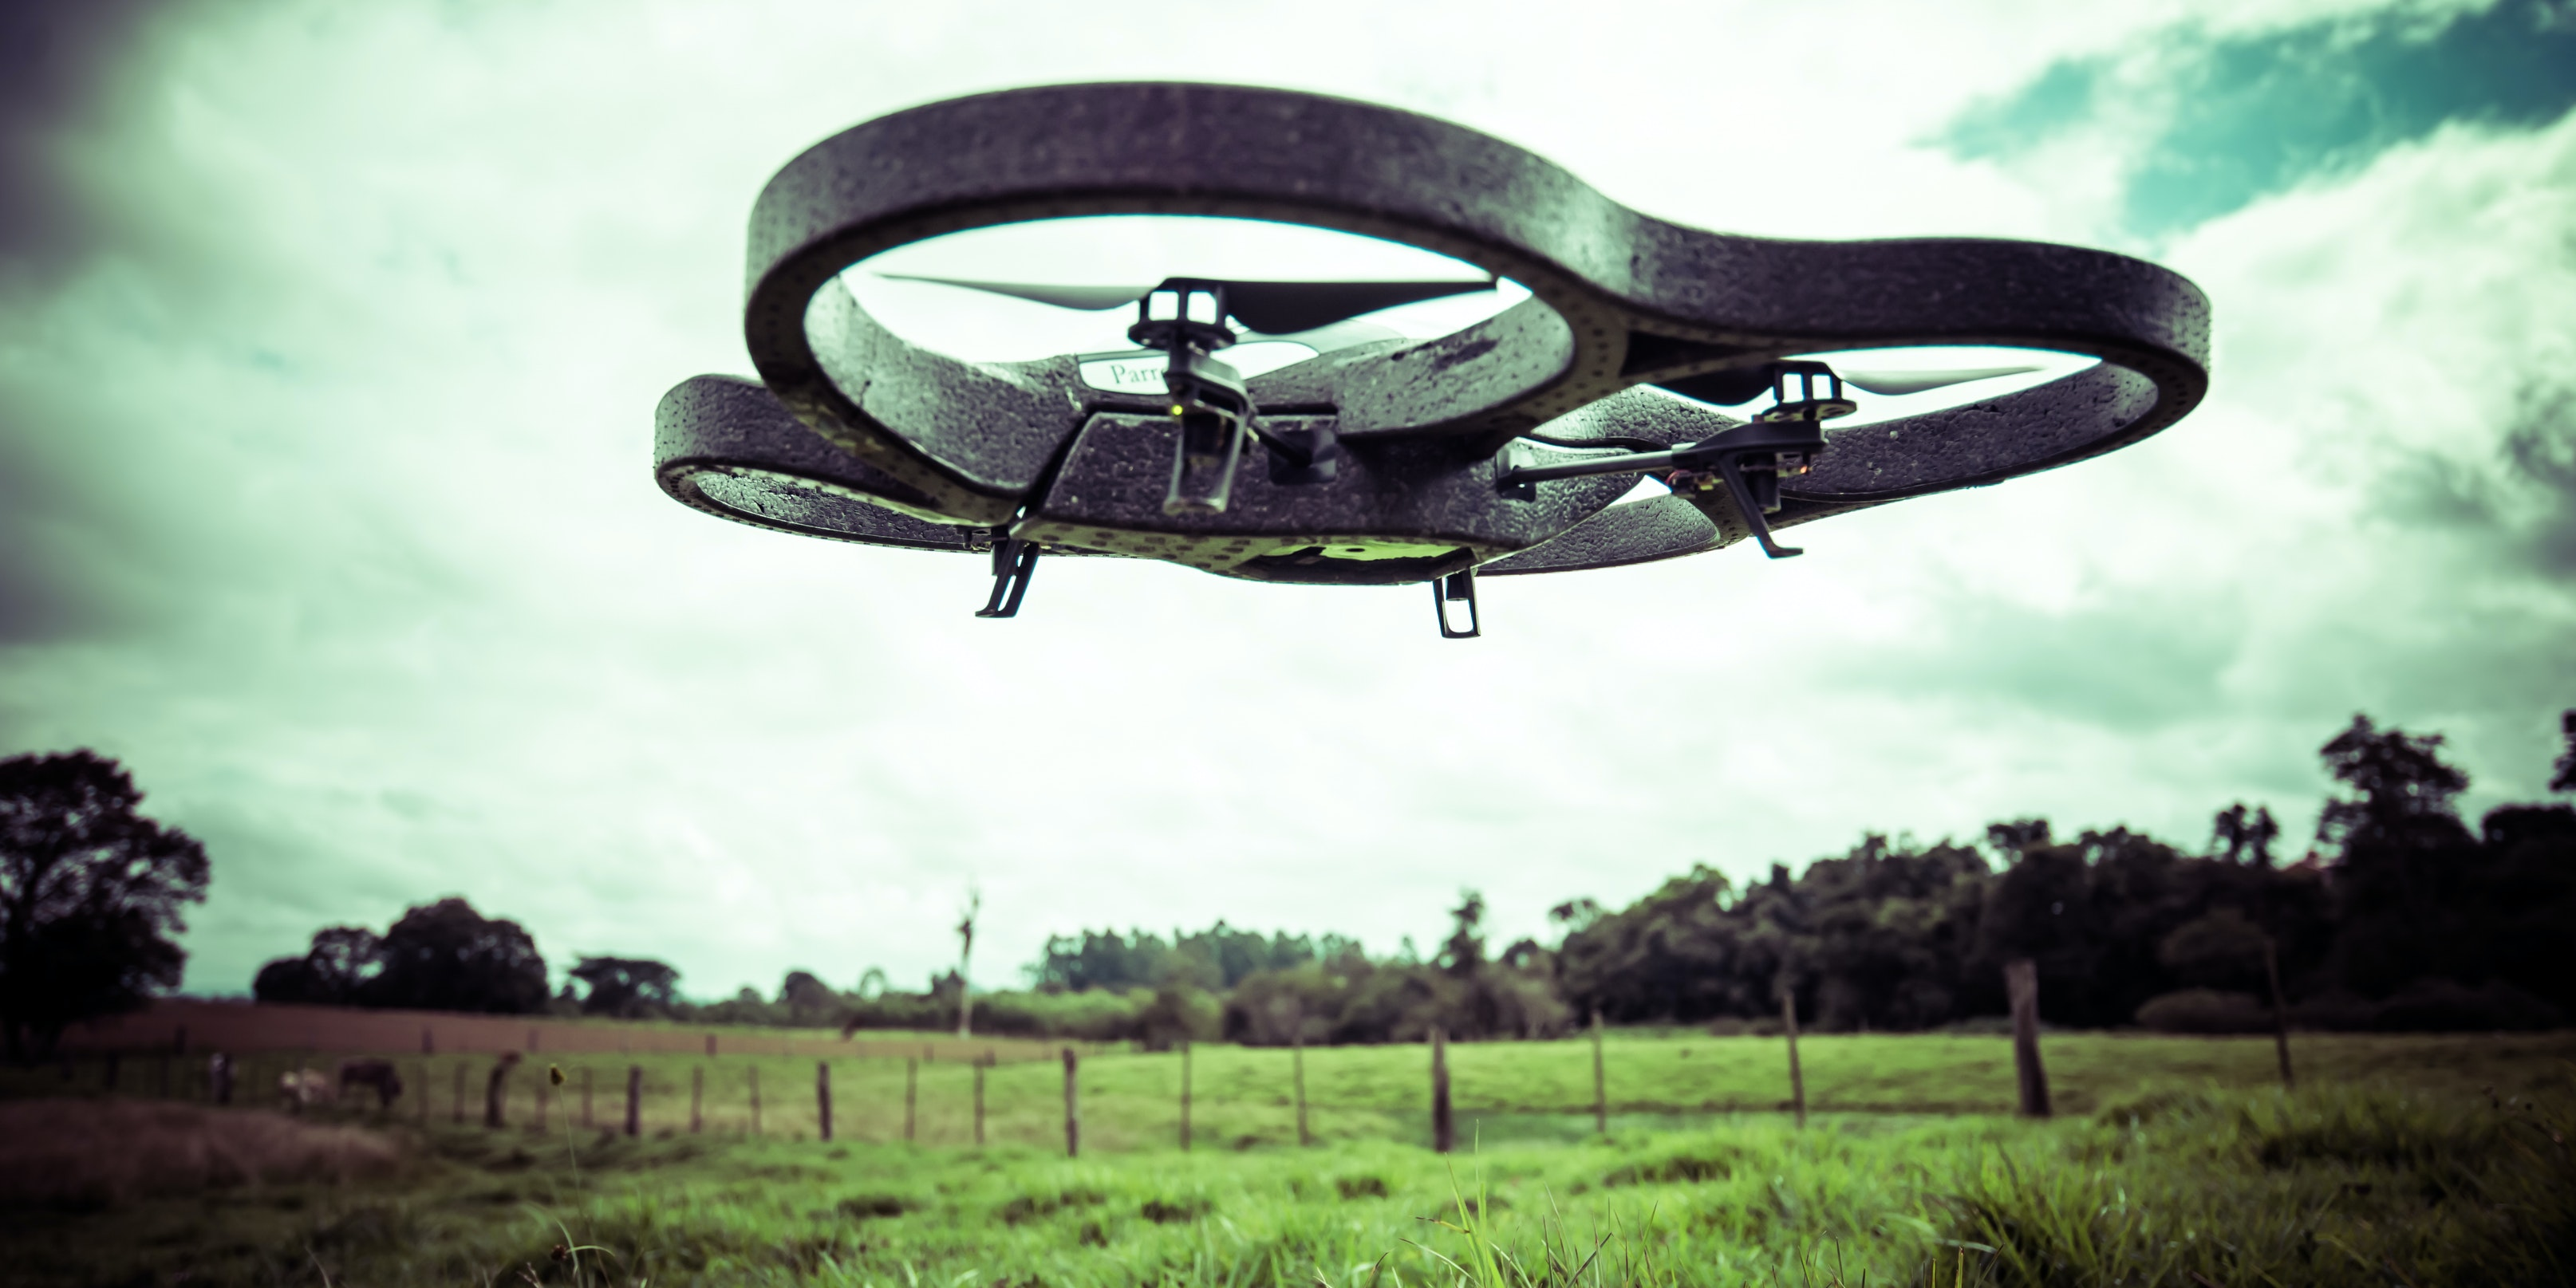 Why You Should Care About Drone-Assisted Agriculture